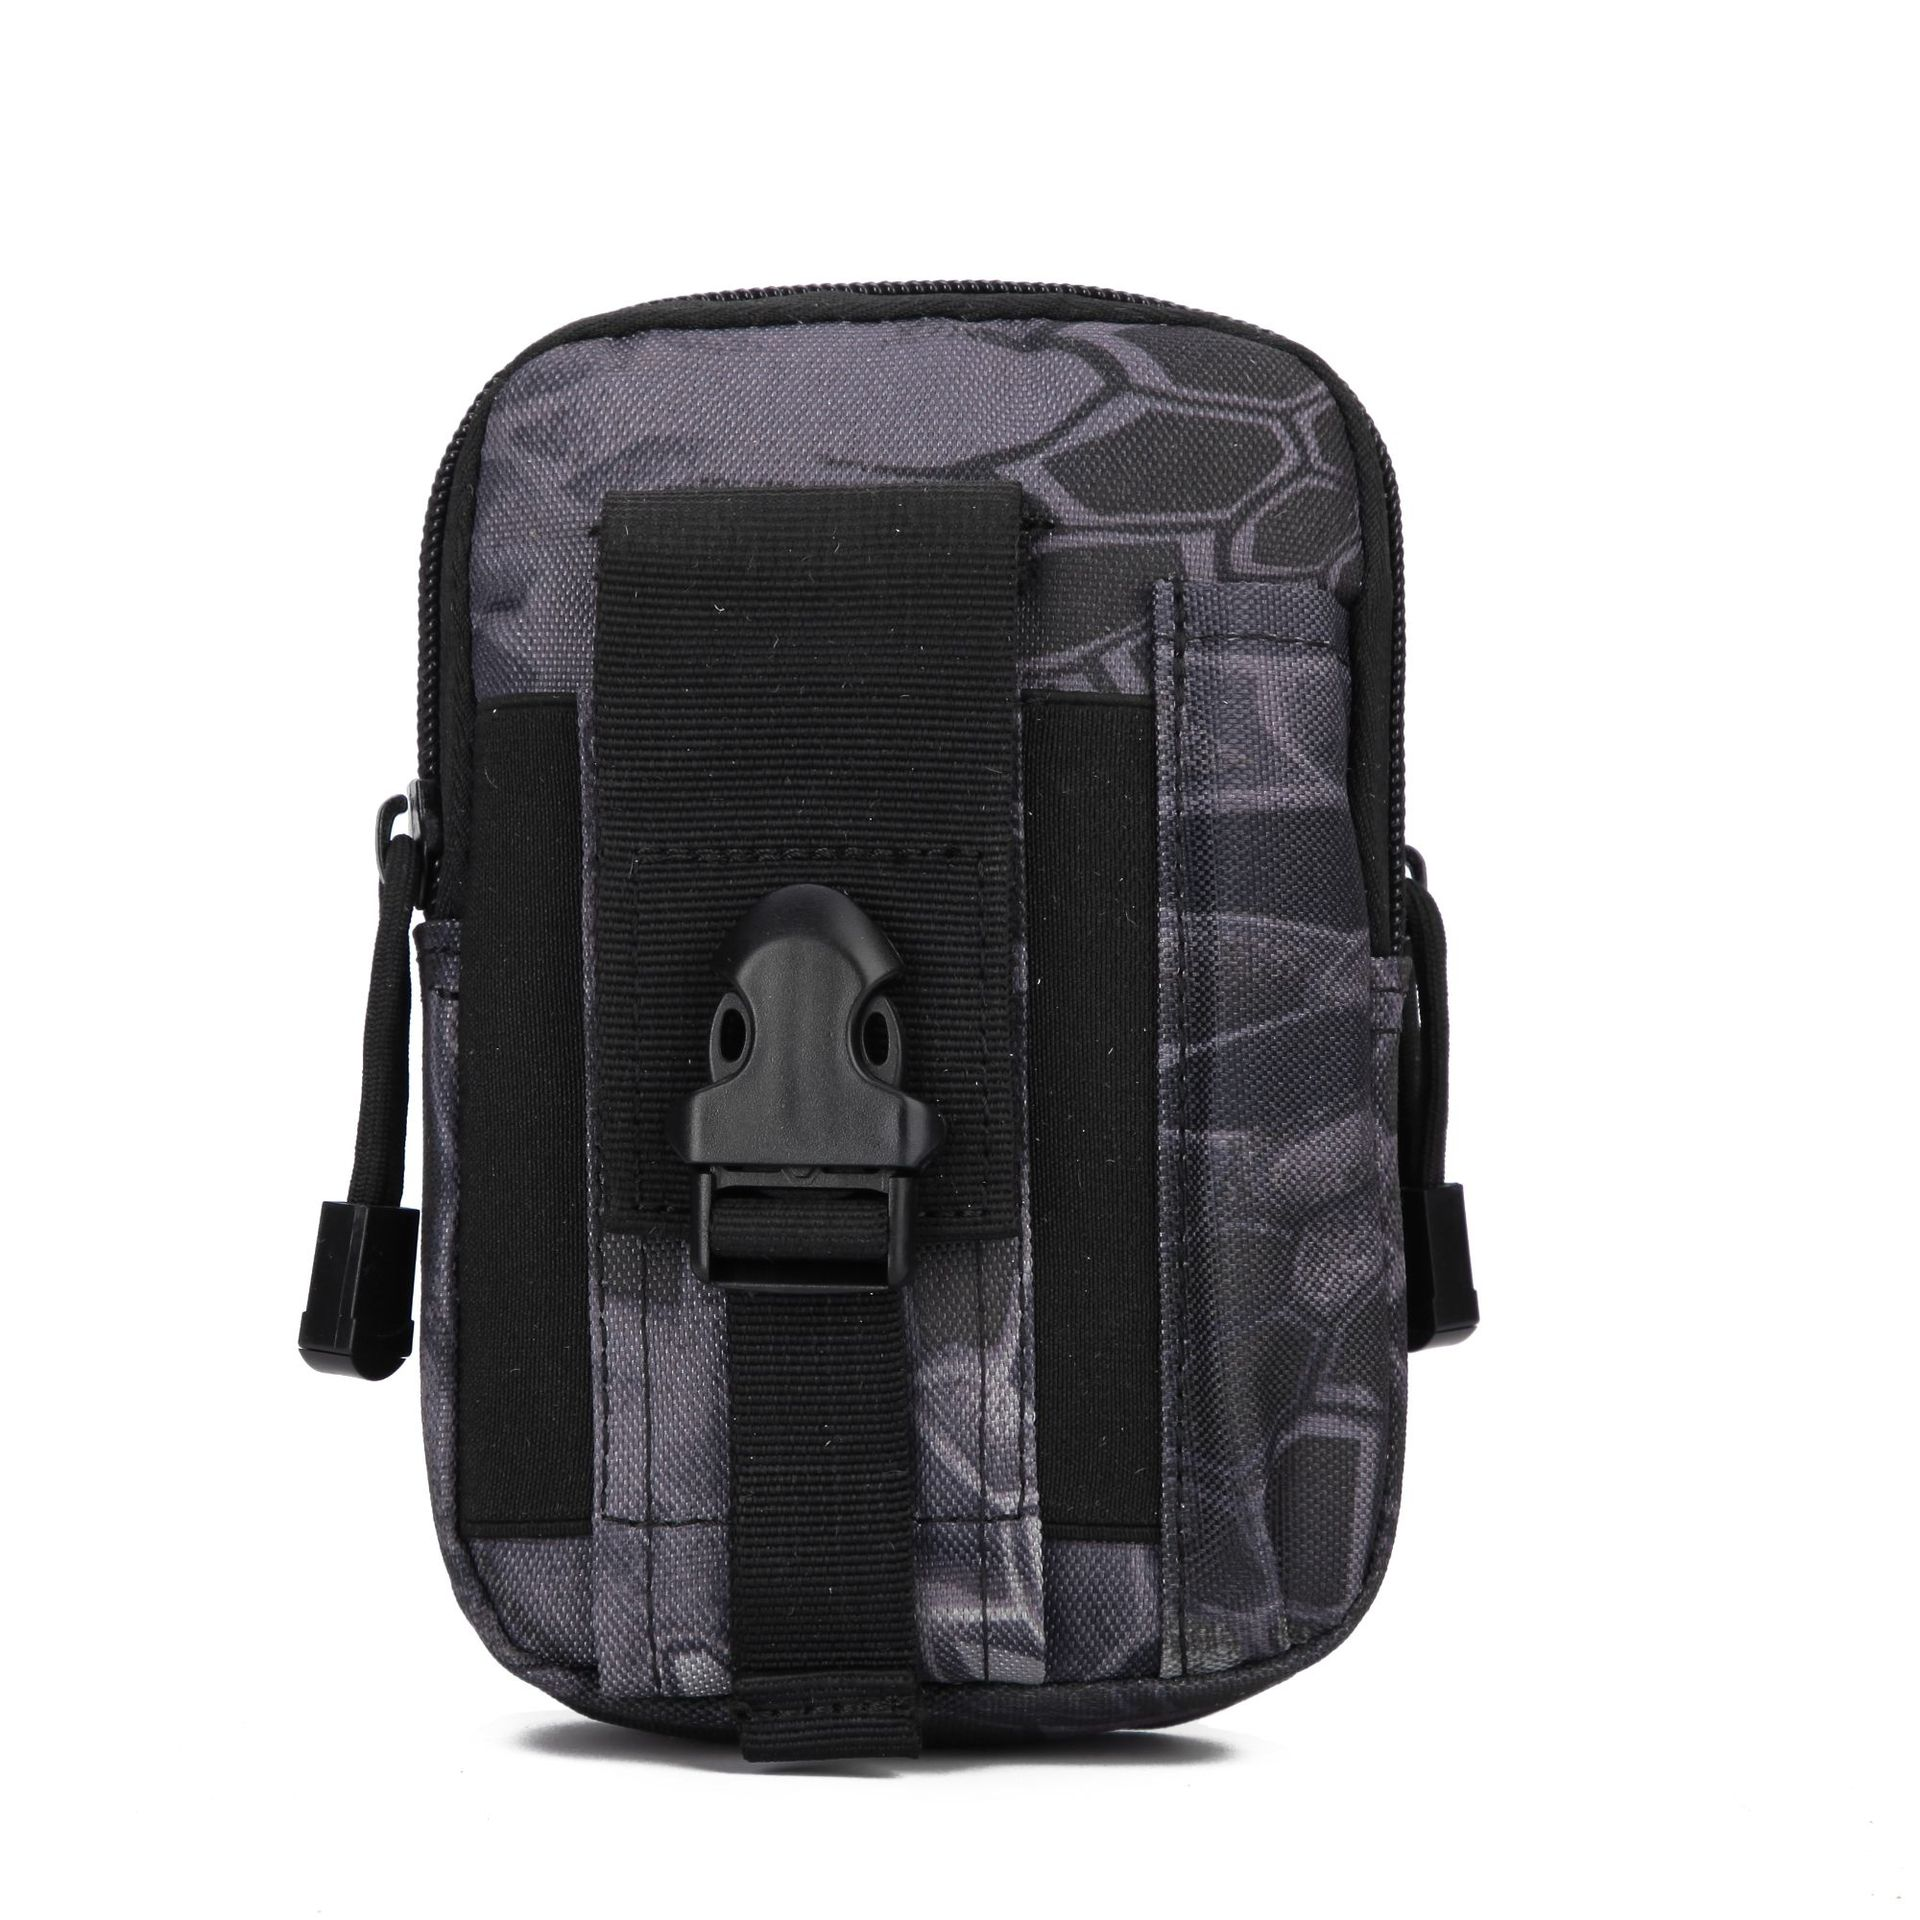 Army Fans Camouflage Tactical Waist Pack Pannier Bag Outdoor Sports Multi-functional Tactical Molle Accessories Camouflage Walle